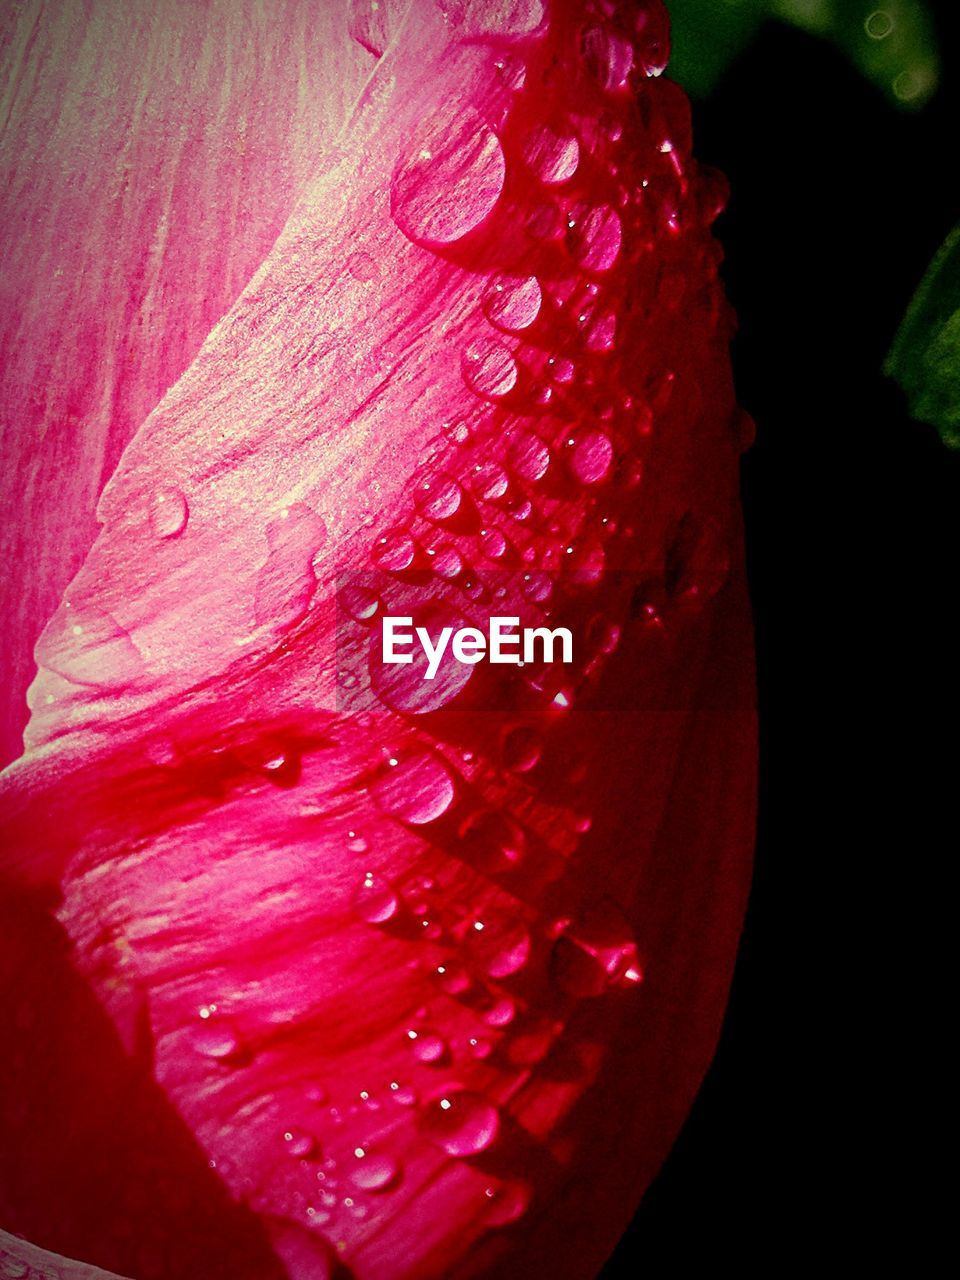 flower, petal, red, freshness, drop, flower head, nature, beauty in nature, fragility, wet, close-up, growth, water, no people, blooming, day, outdoors, hibiscus, black background